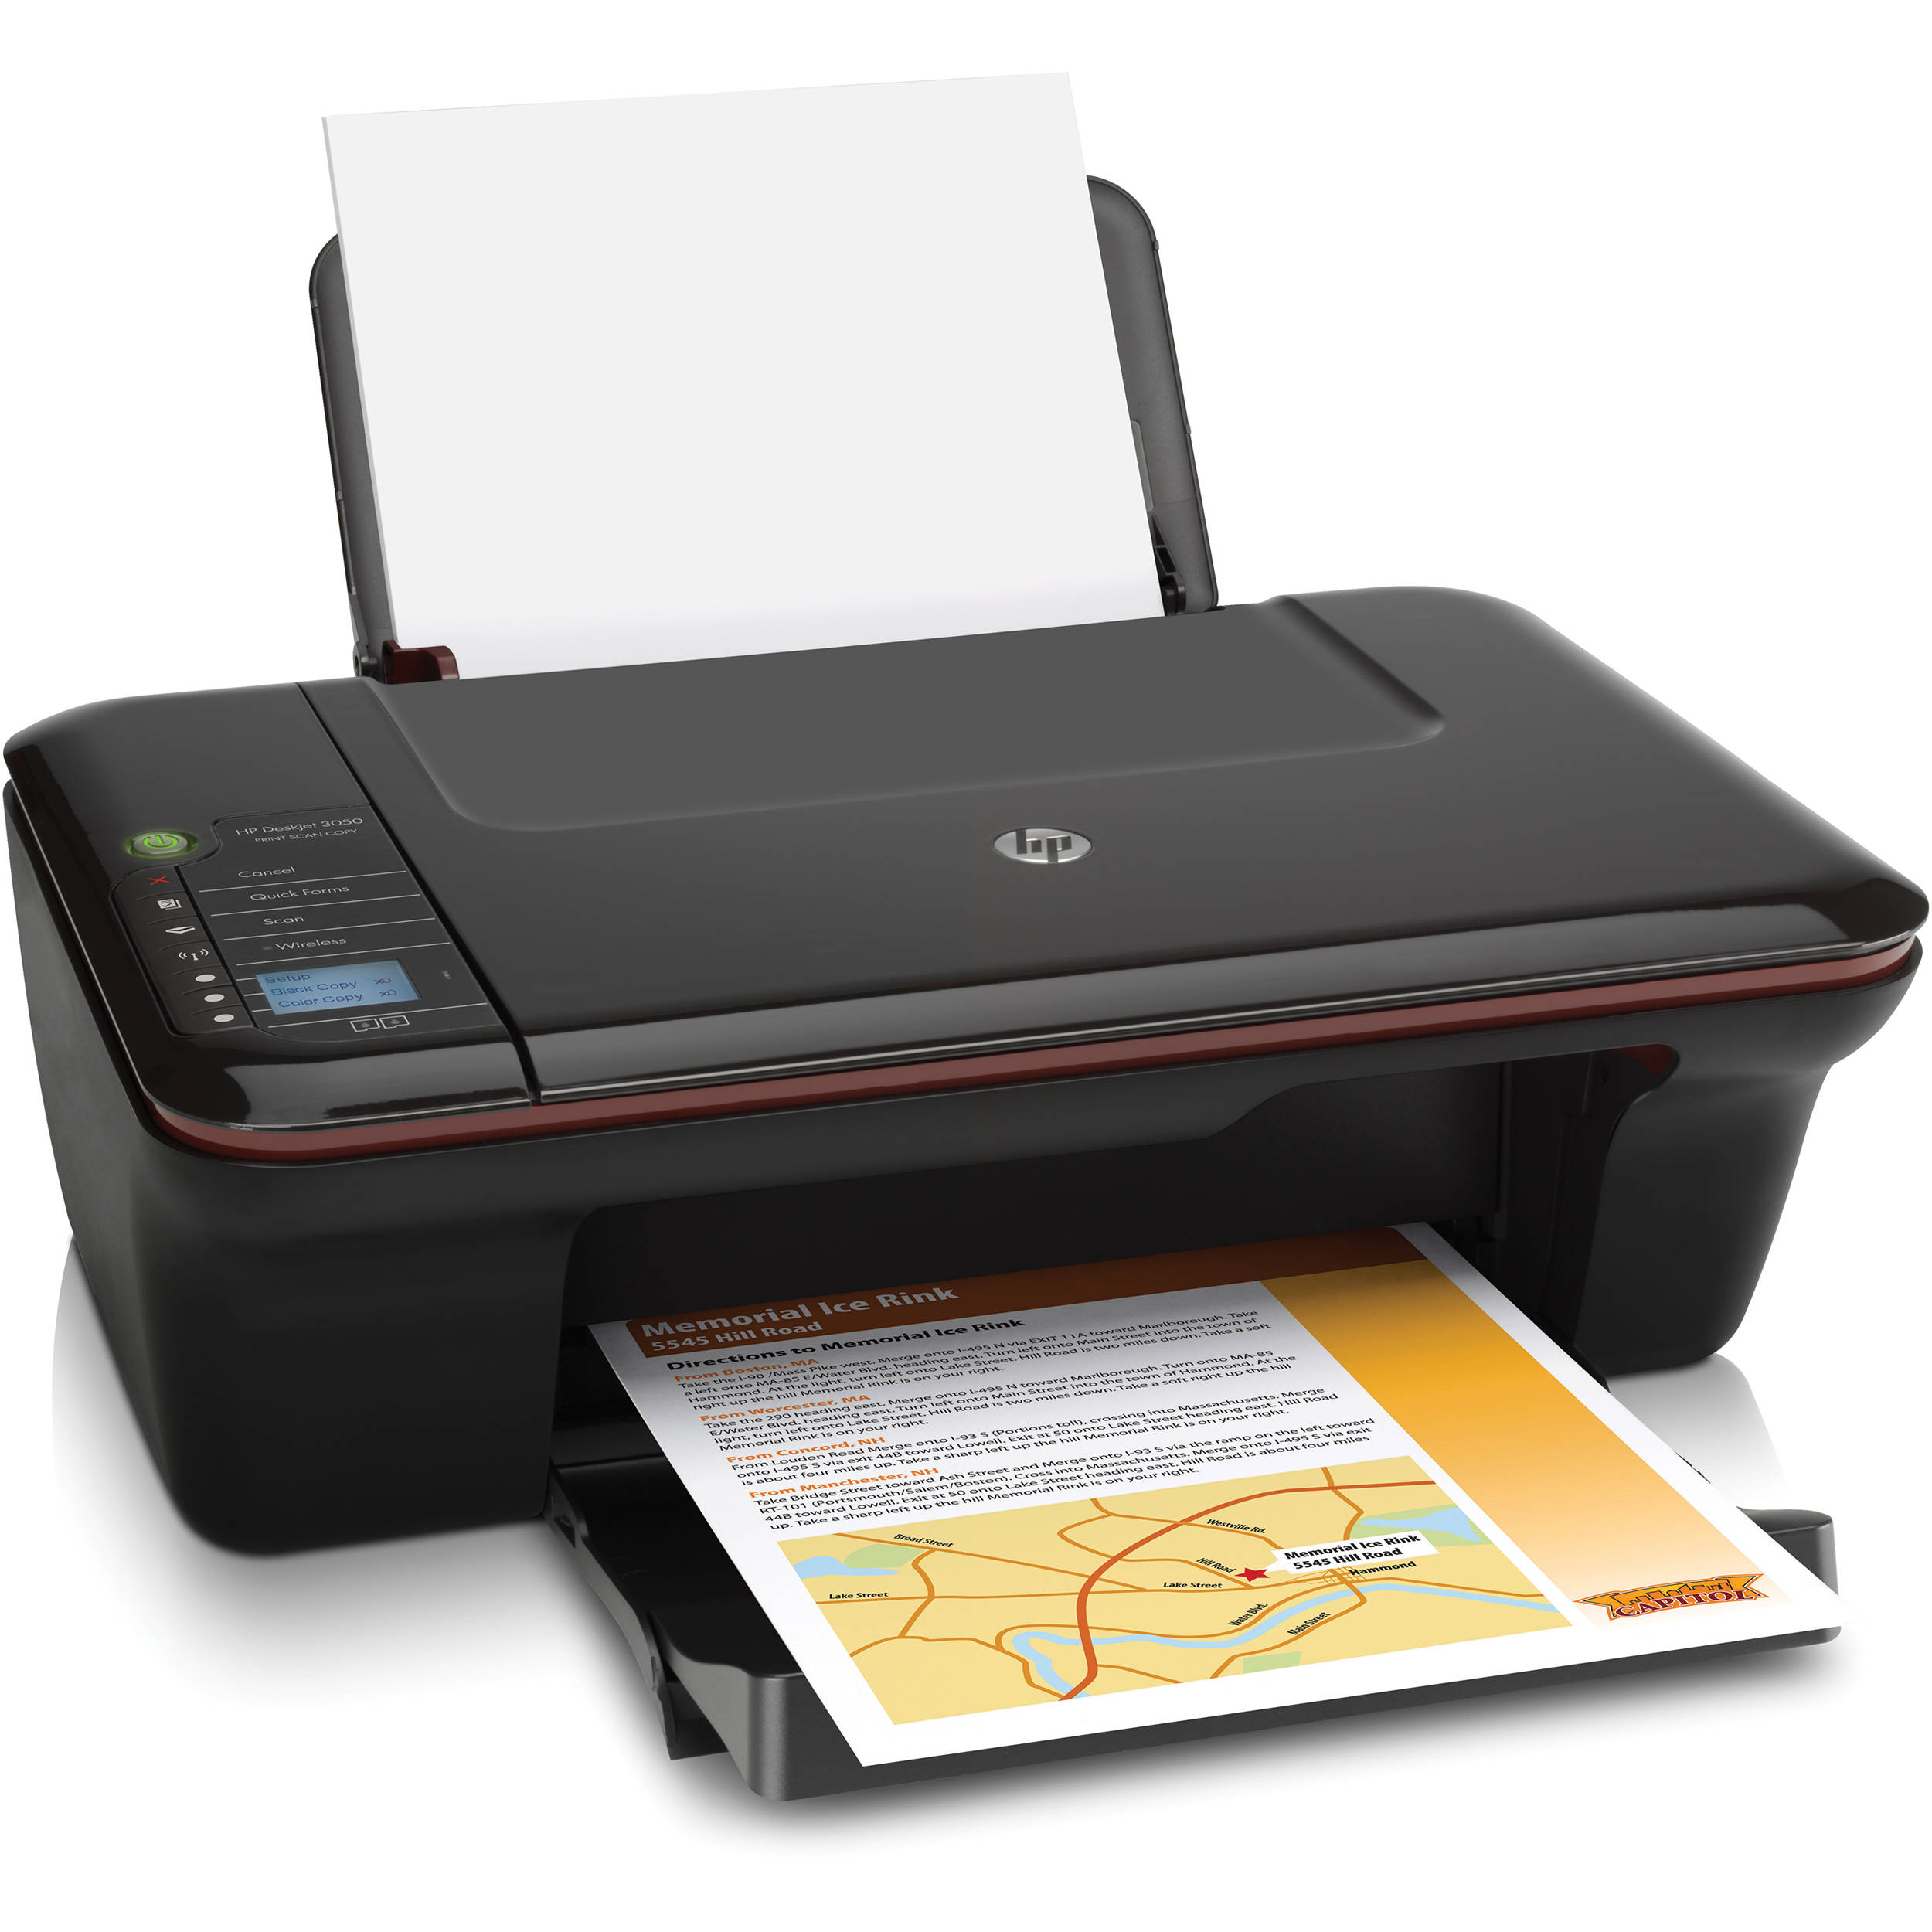 HP Deskjet 3050 Wireless All-in-One Color Inkjet Printer